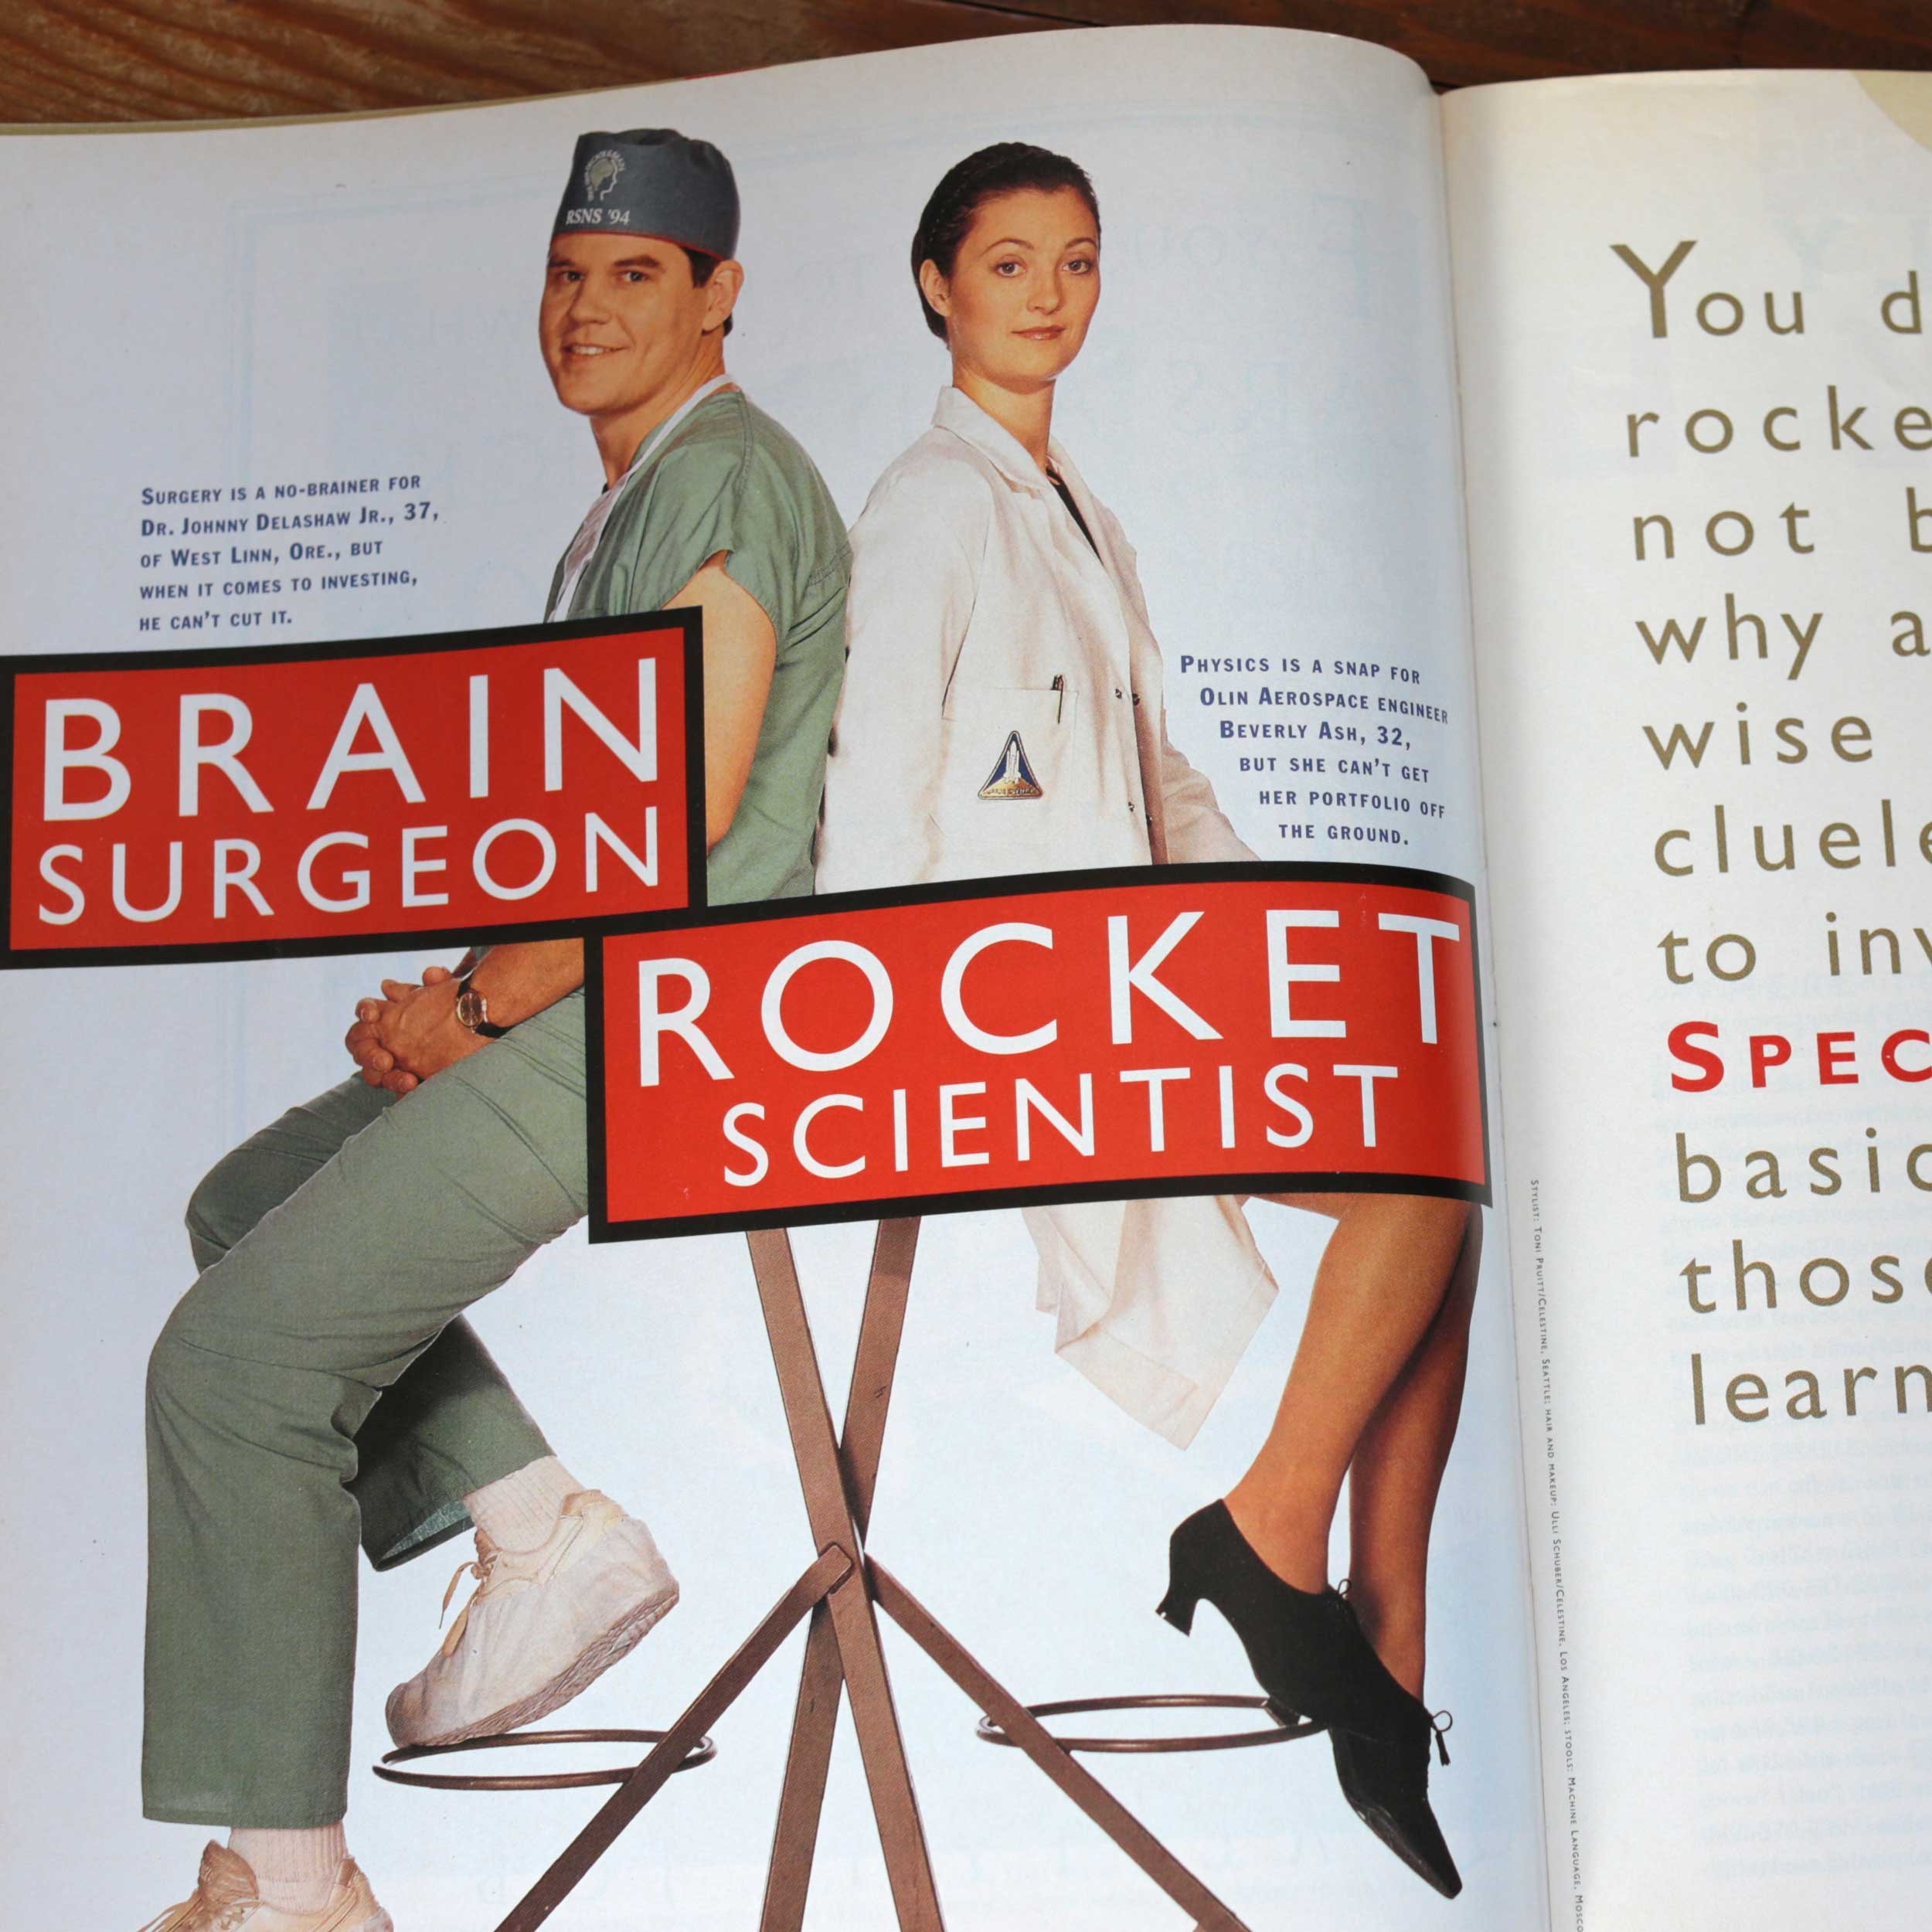 Photo Credit: Money Magazine wrote an article about how even people who might seem to be clever in one area are not necessarily smart about investing money. Yup - I was the Rocket Scientist in 'You Don't Have To Be A Rocket Scientist Or Brain Surgeon'. And yes, they asked me to have that very dour look on my face.